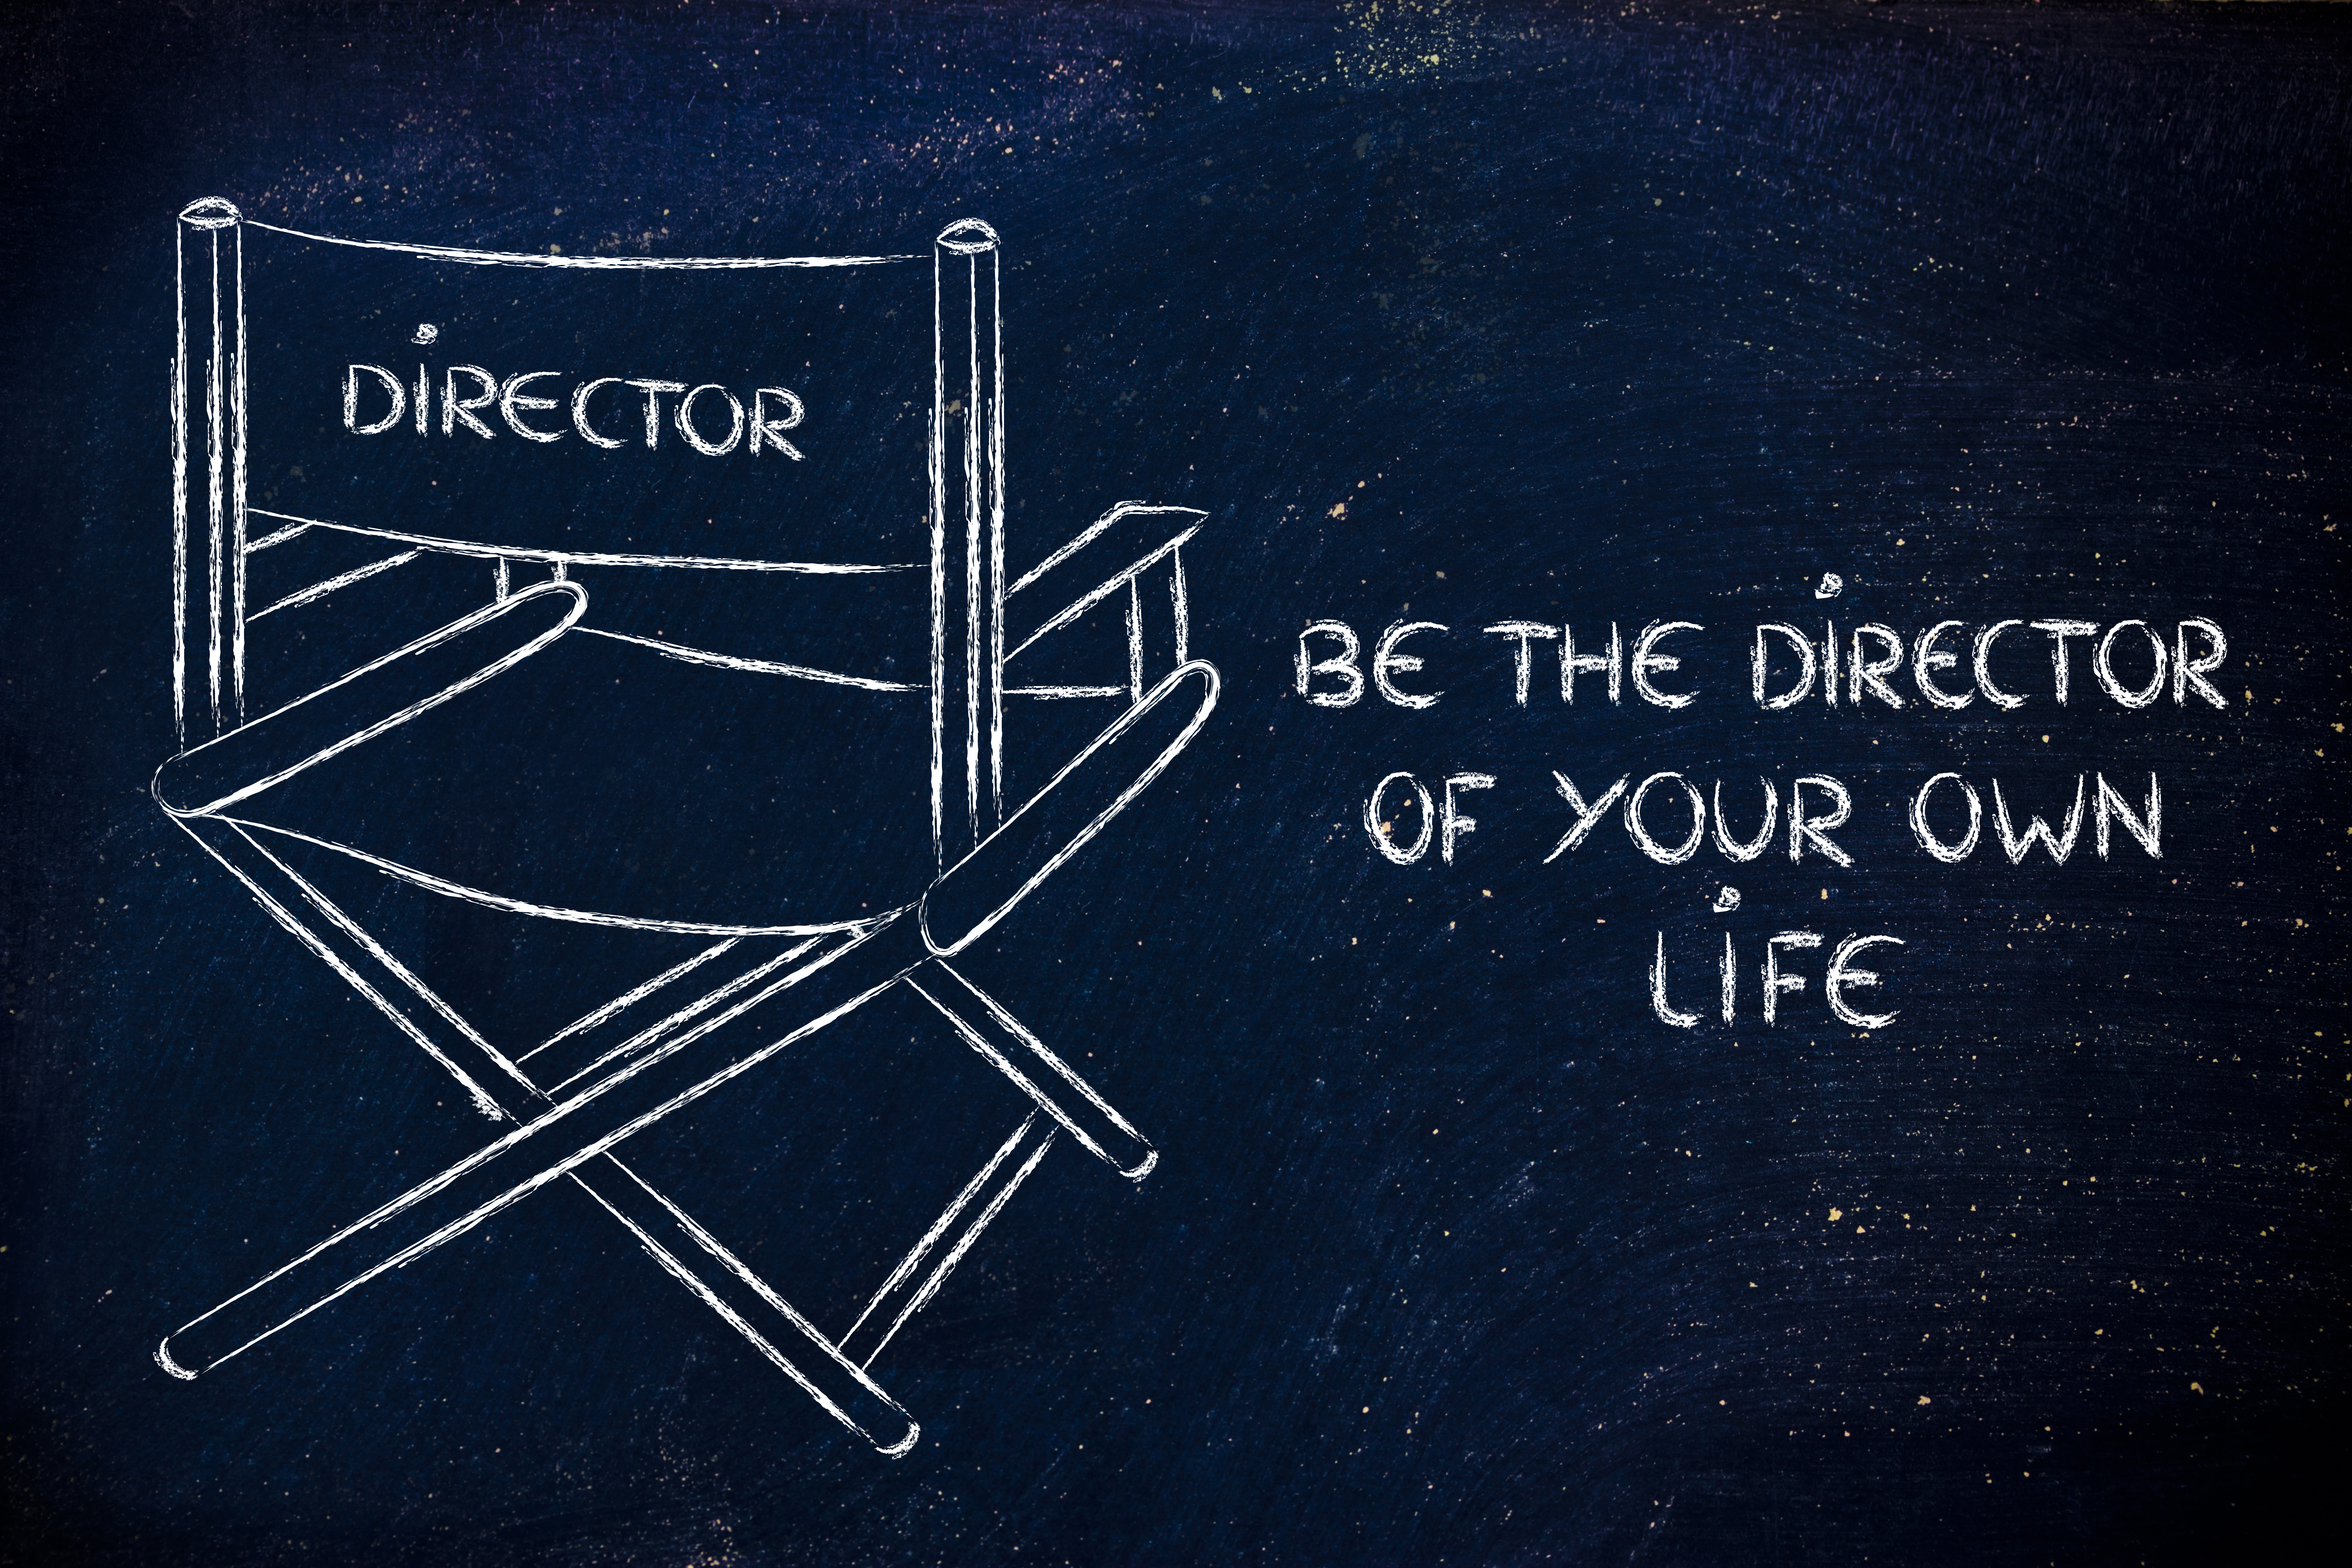 Drawing of a Image of a director's chair on a black board - representing that To Get what you want in life you need to be the director of your own life